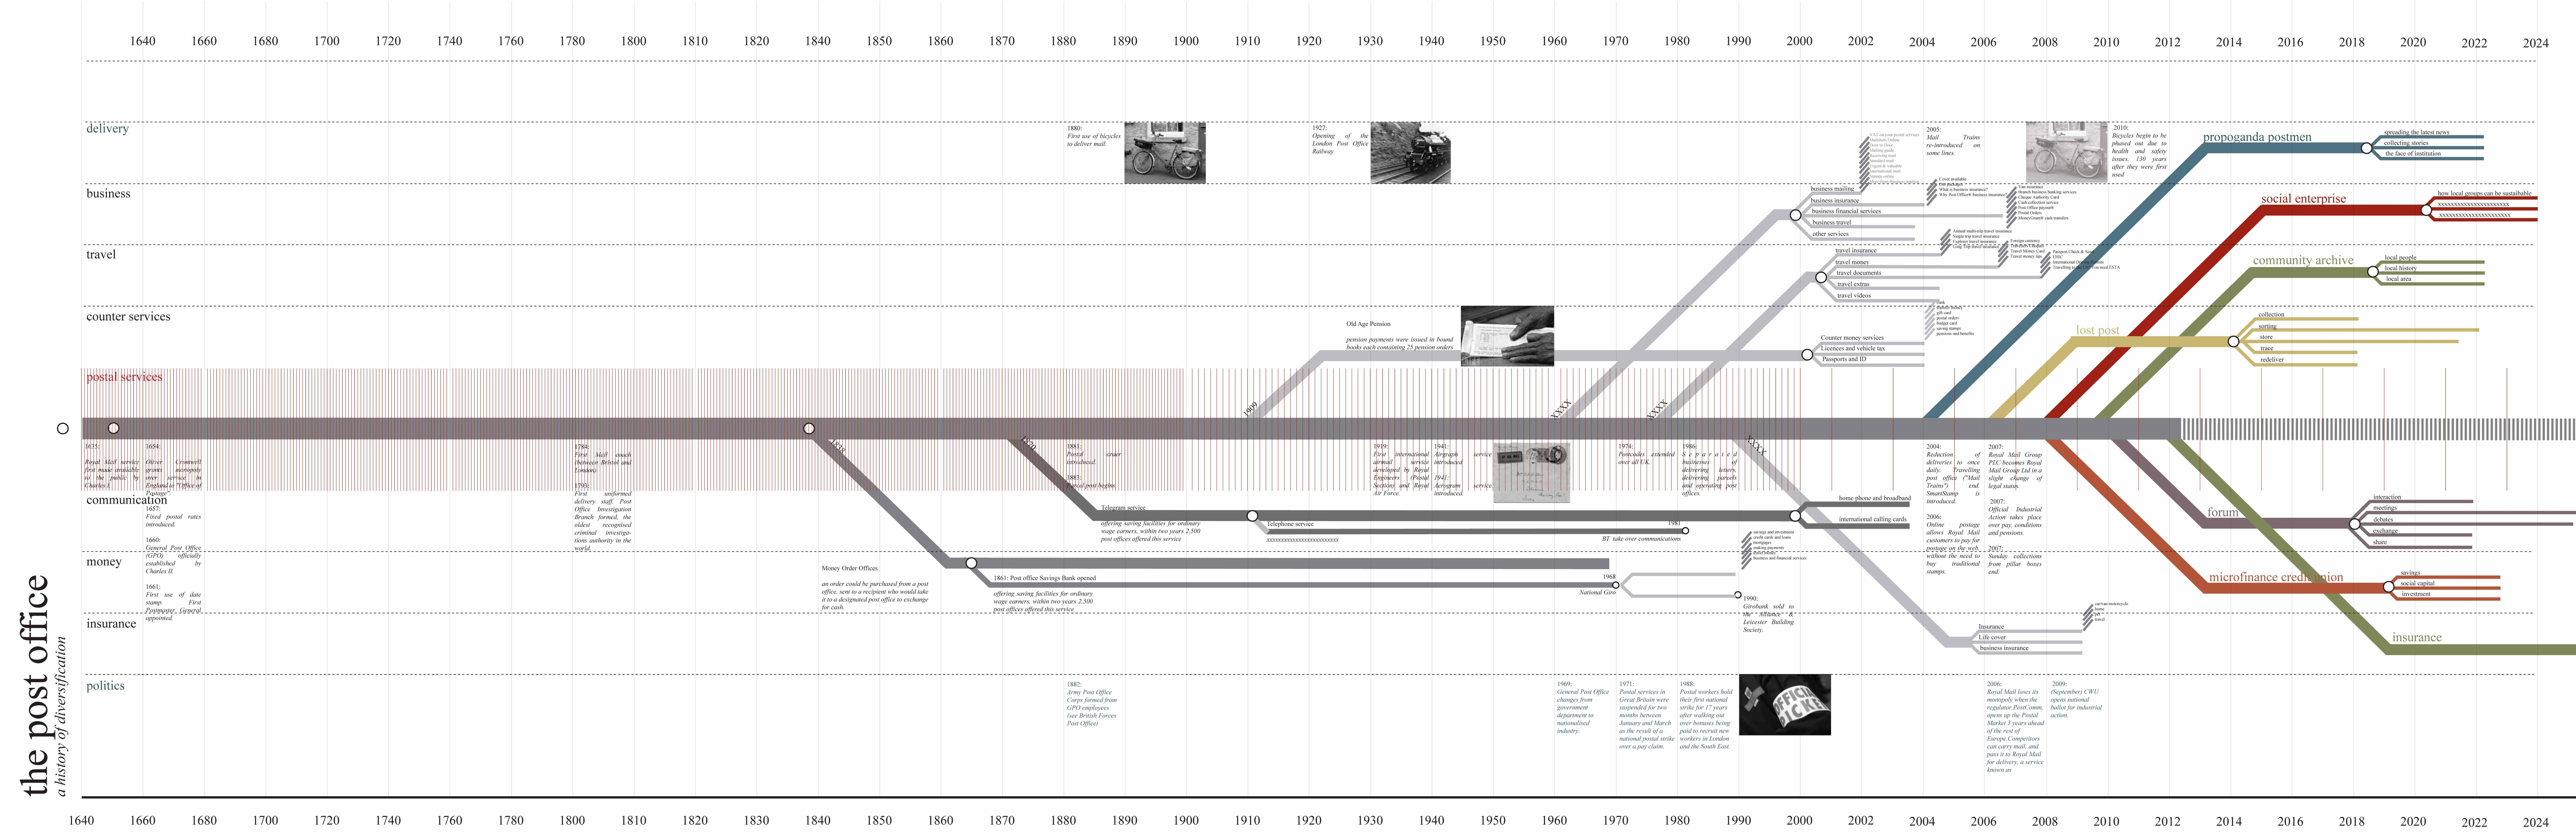 Post Office timeline - Sarah Ernst | Timelines | Pinterest | Post ...